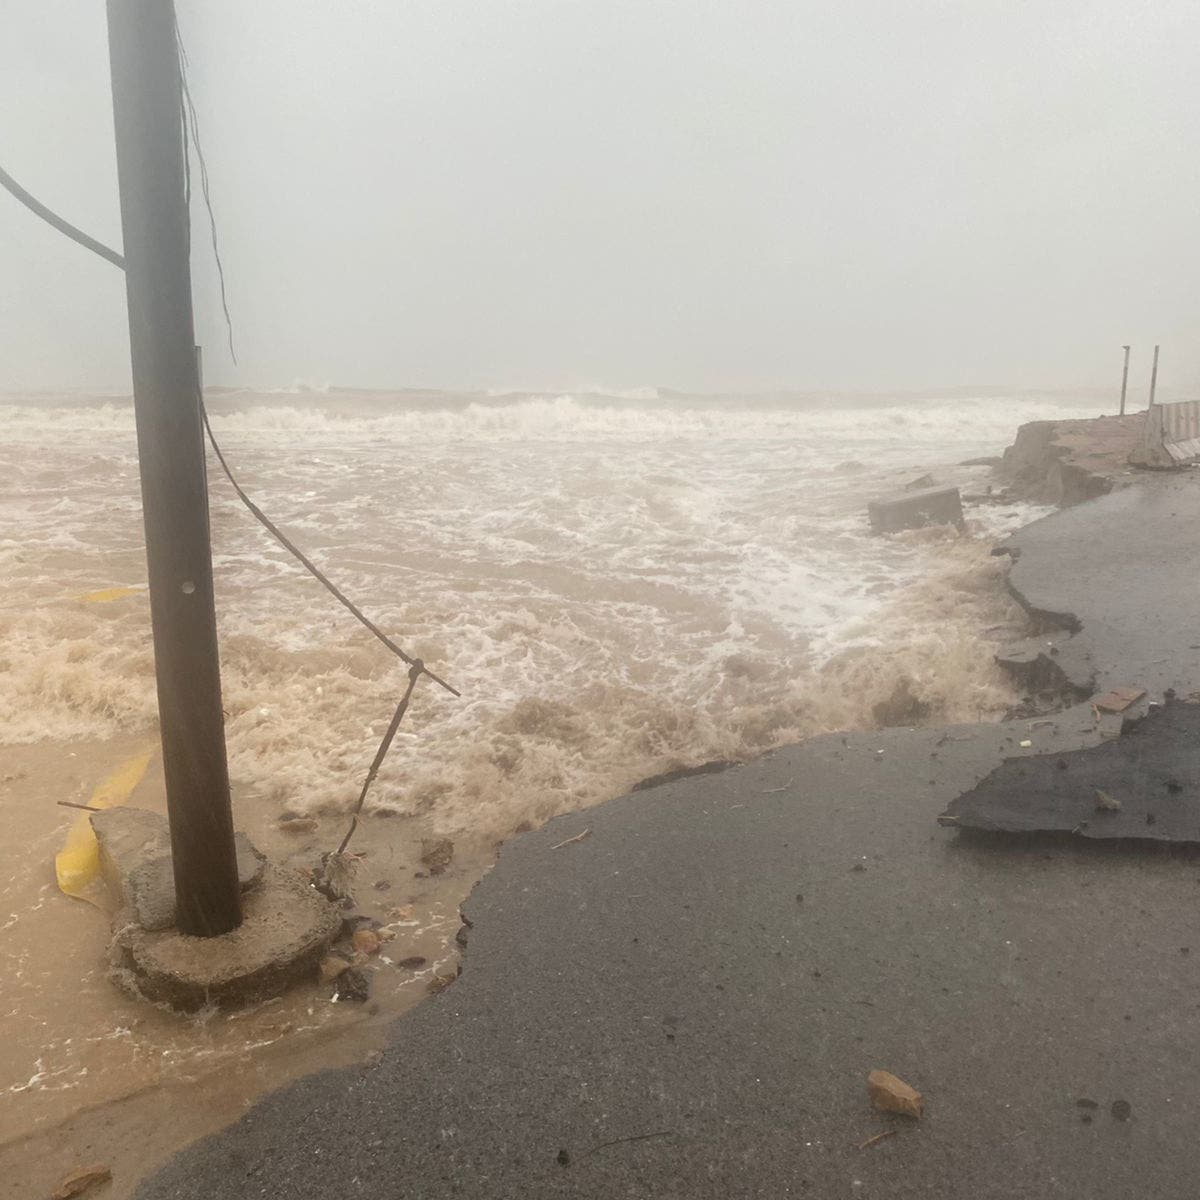 Child reported dead after disappearing during Oman's Shaheen storm